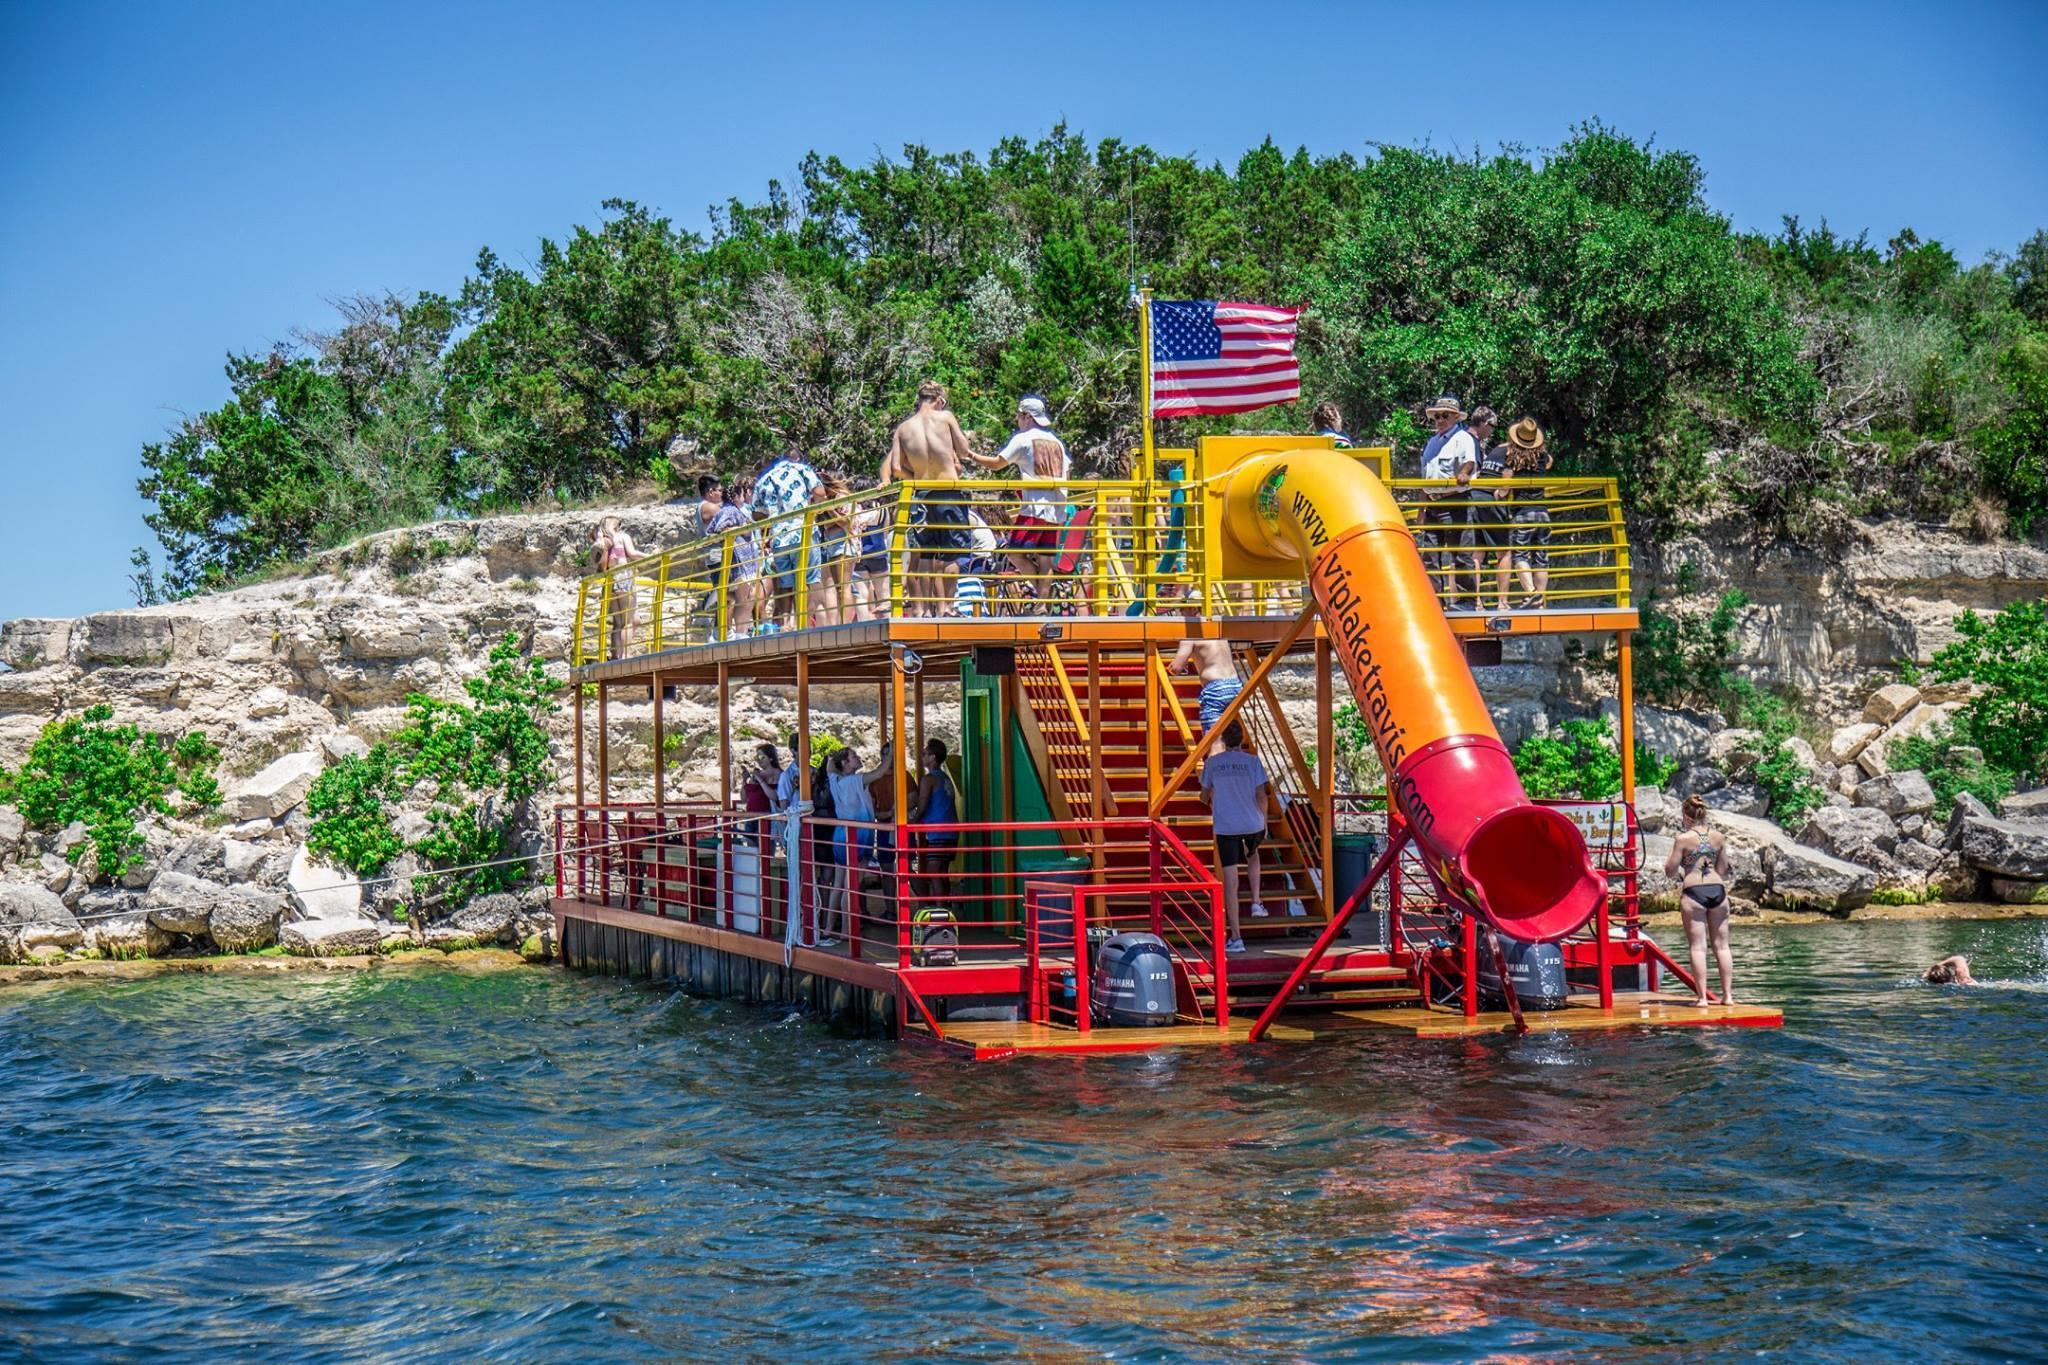 Lakefront Estate Lake Travis Lakefront Vacation Rental additionally Texas Party Boats likewise Ski Boat And Driver together with Marshall Ford Marina further 365424957247890383. on lake travis party boat rentals